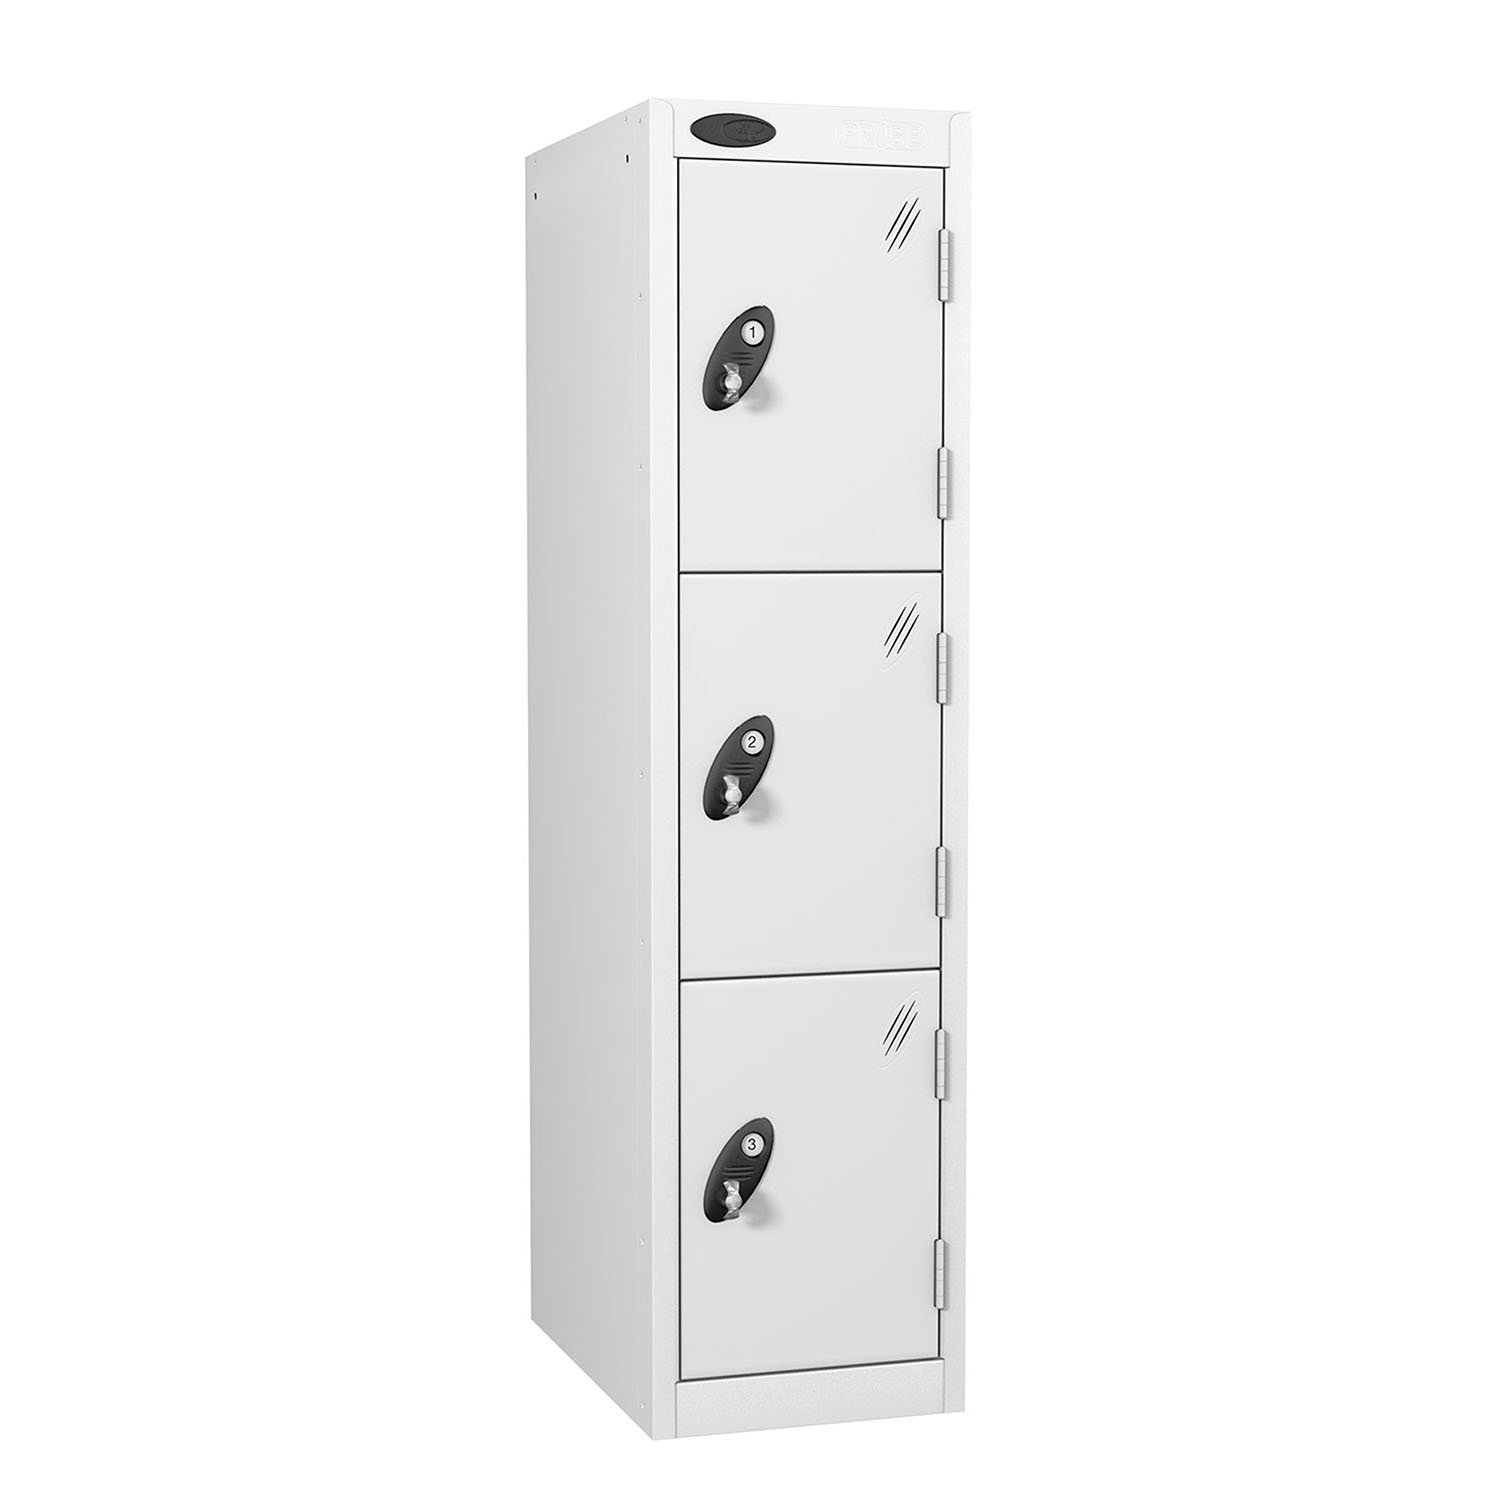 Probe 3 doors low locker in white colour